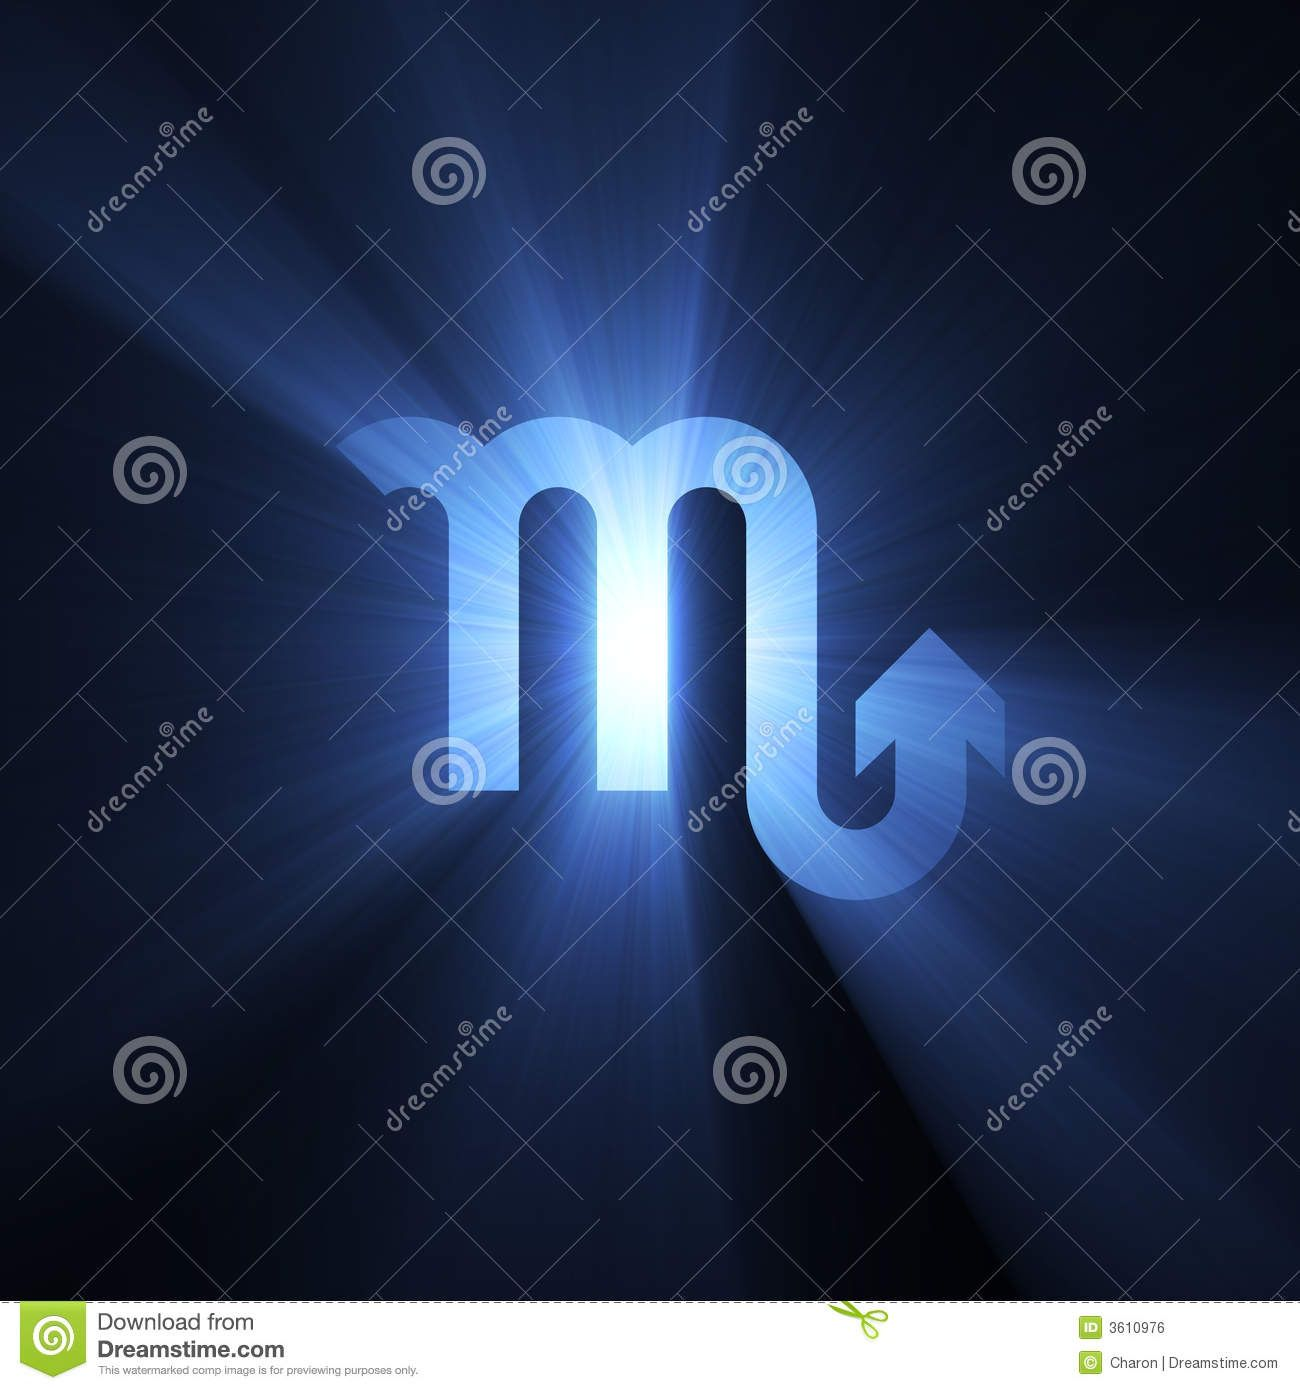 Astrology symbol scorpio space halo royalty free stock image astrology symbol scorpio space halo royalty free stock image buycottarizona Image collections